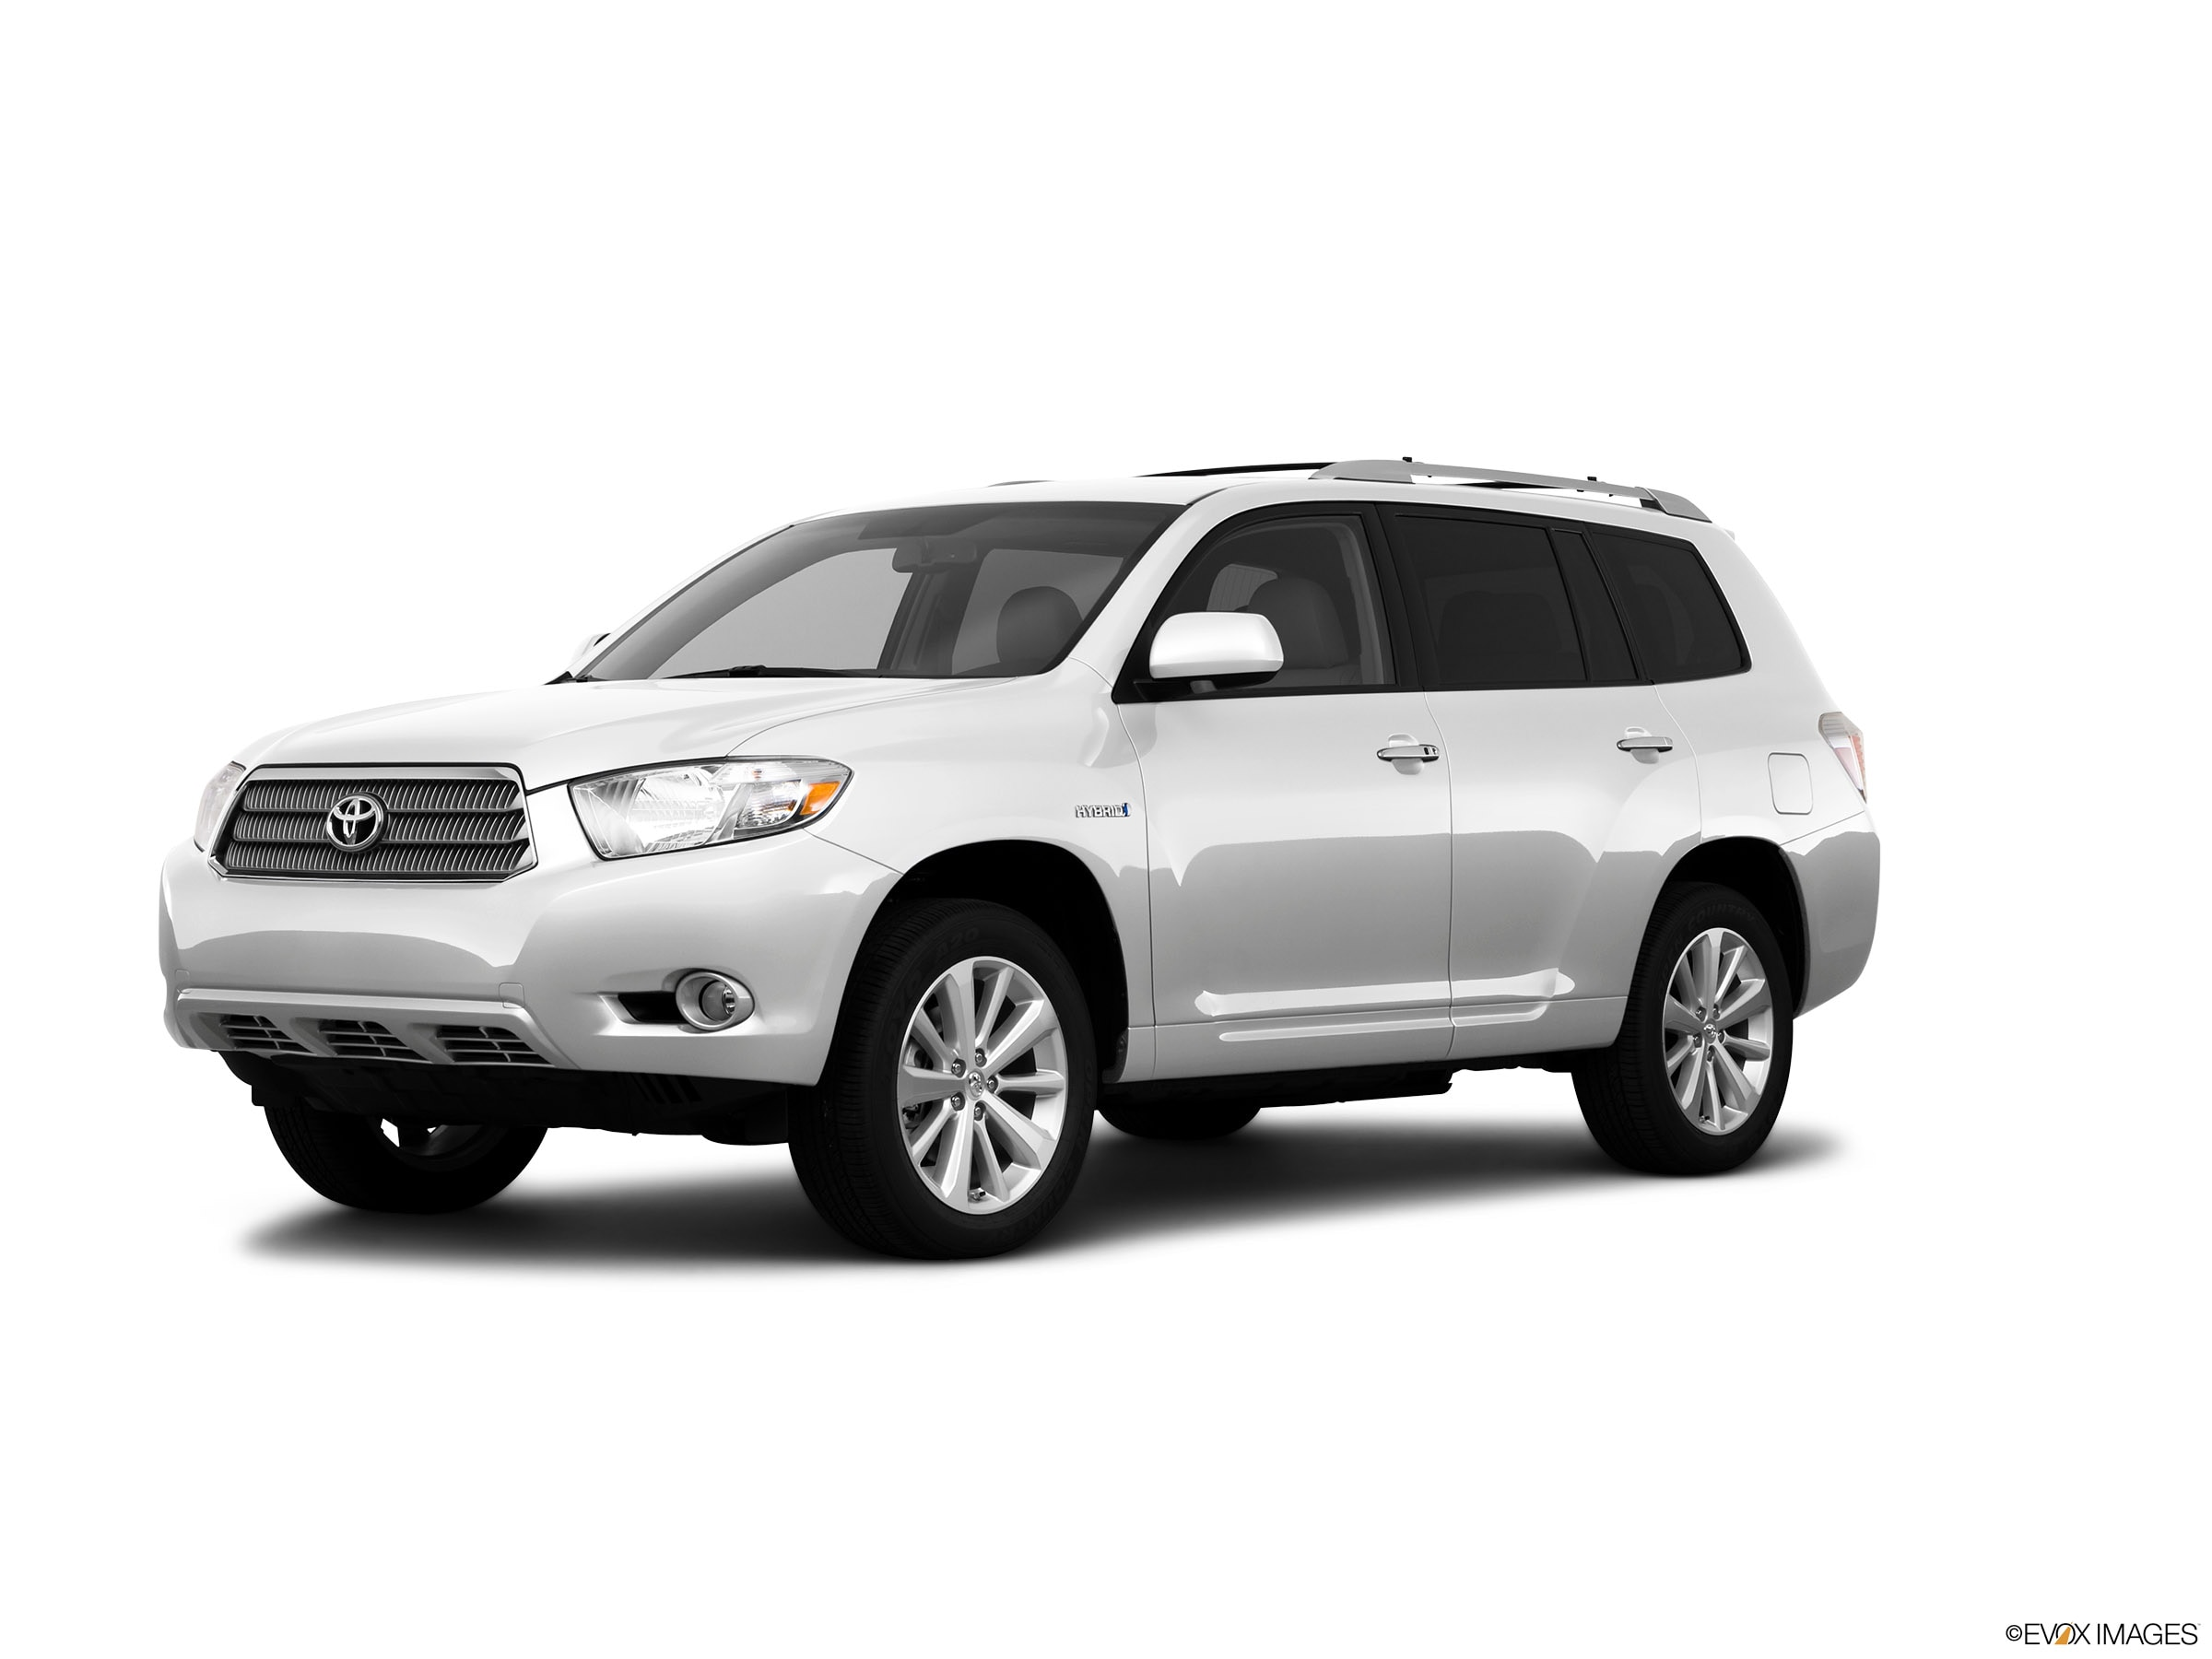 Used 2010 Toyota Highlander Limited Hybrid with VIN JTEJW3EH0A2047923 for sale in Maplewood, Minnesota